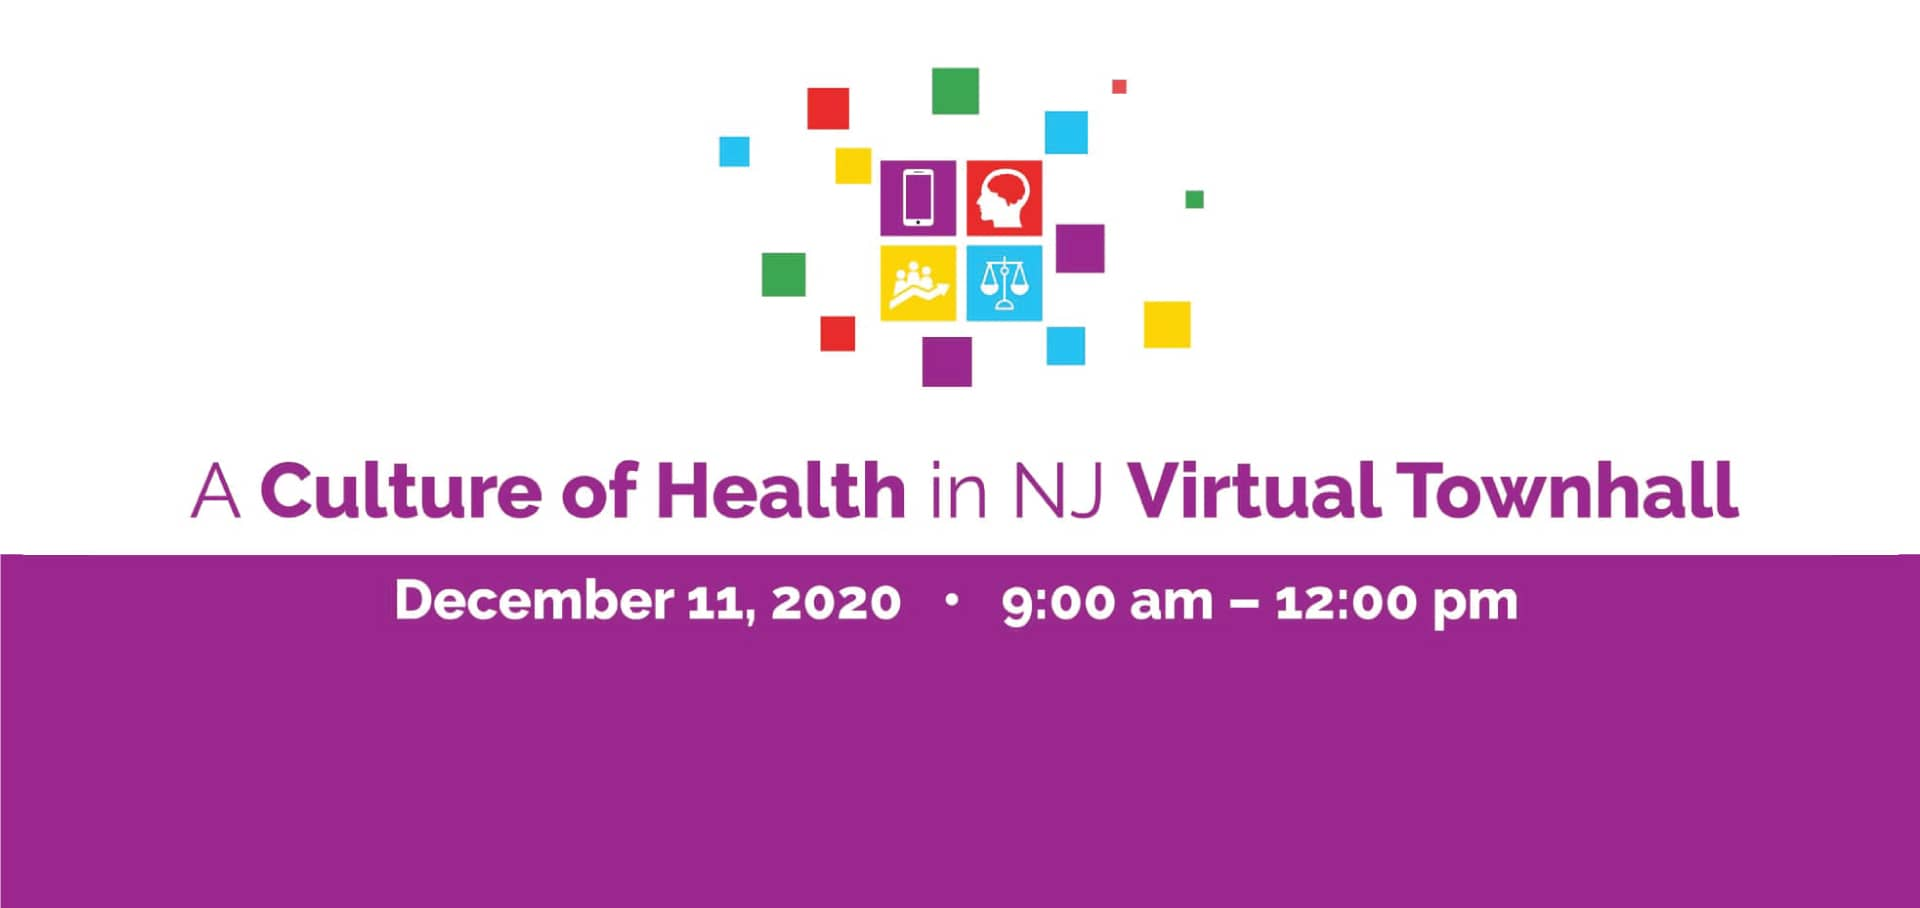 The Culture of Health Virtual Townhall